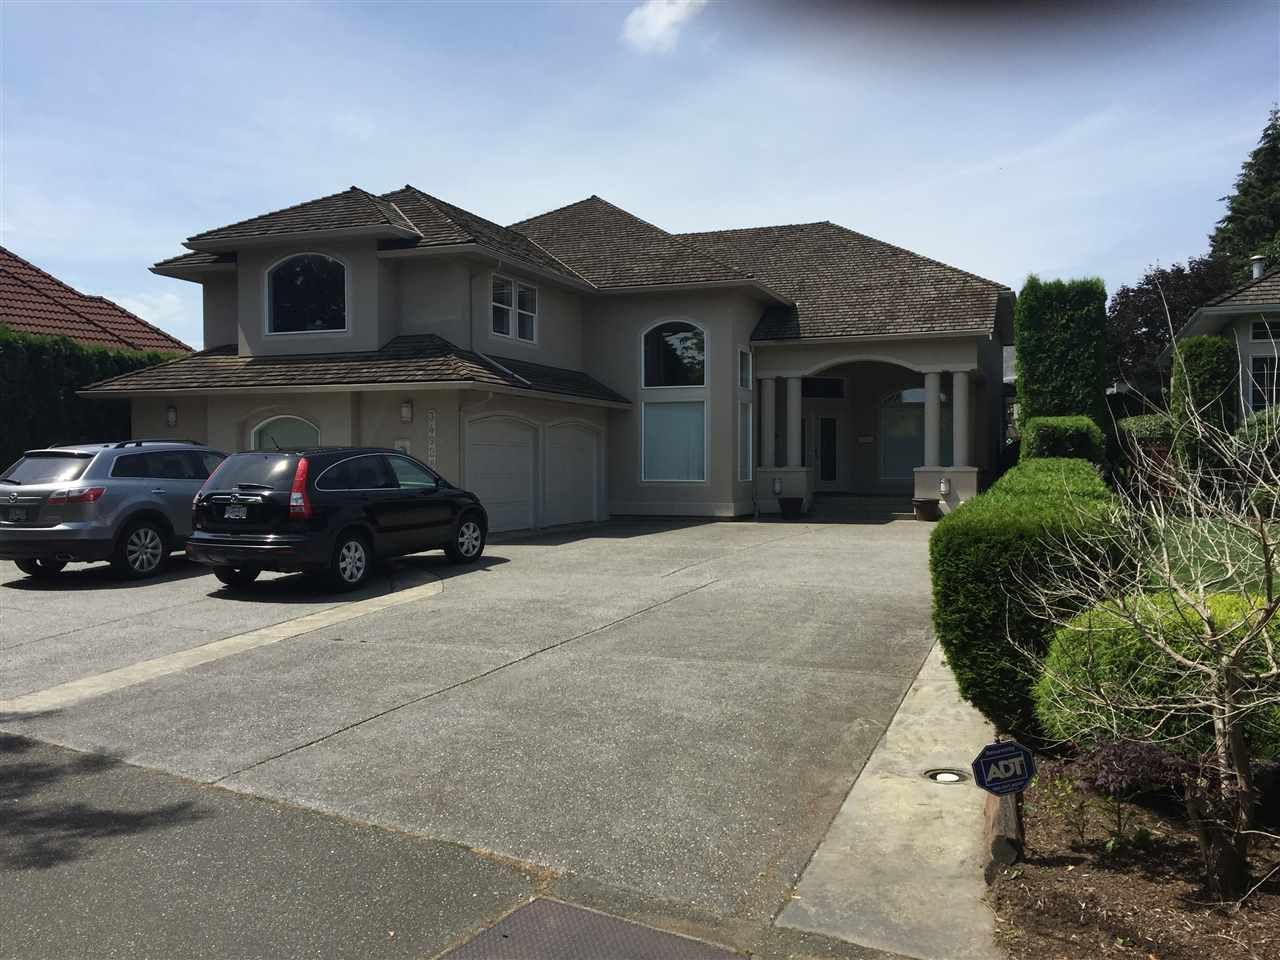 Main Photo: 34928 EVERSON PLACE in Abbotsford: Abbotsford East House for sale : MLS®# R2078458